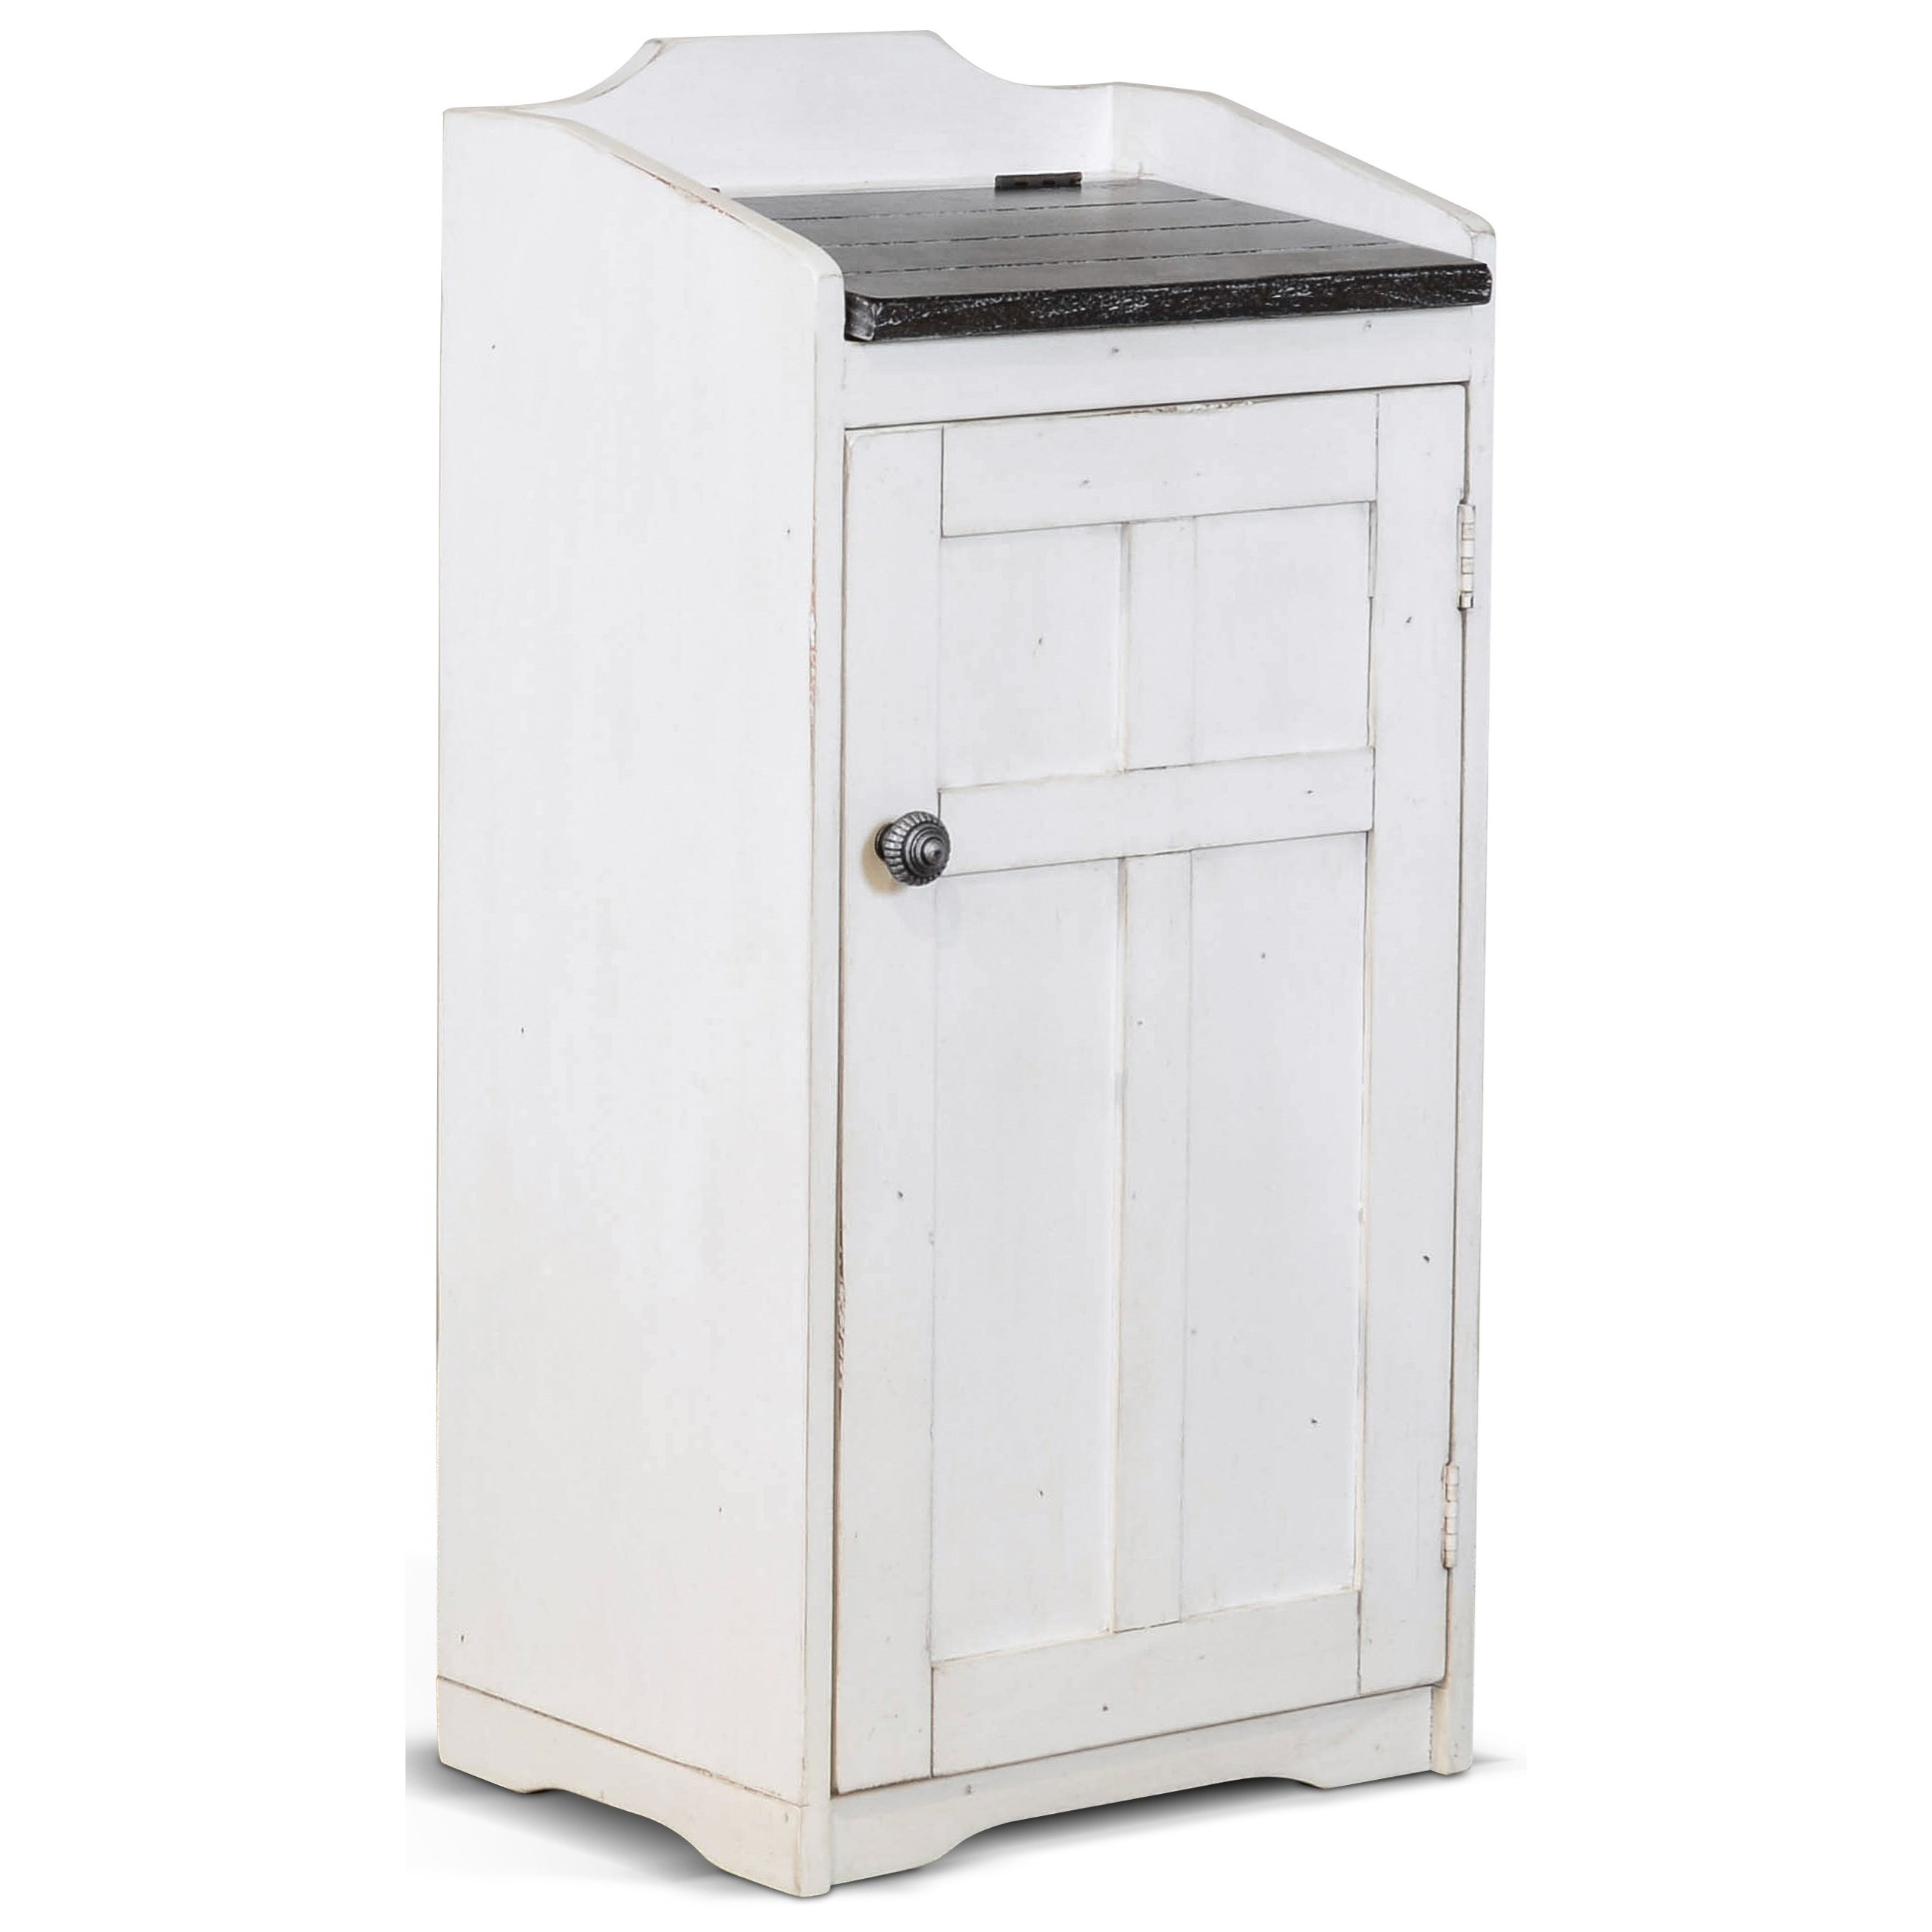 Carriage House Trash Box by Sunny Designs at Suburban Furniture